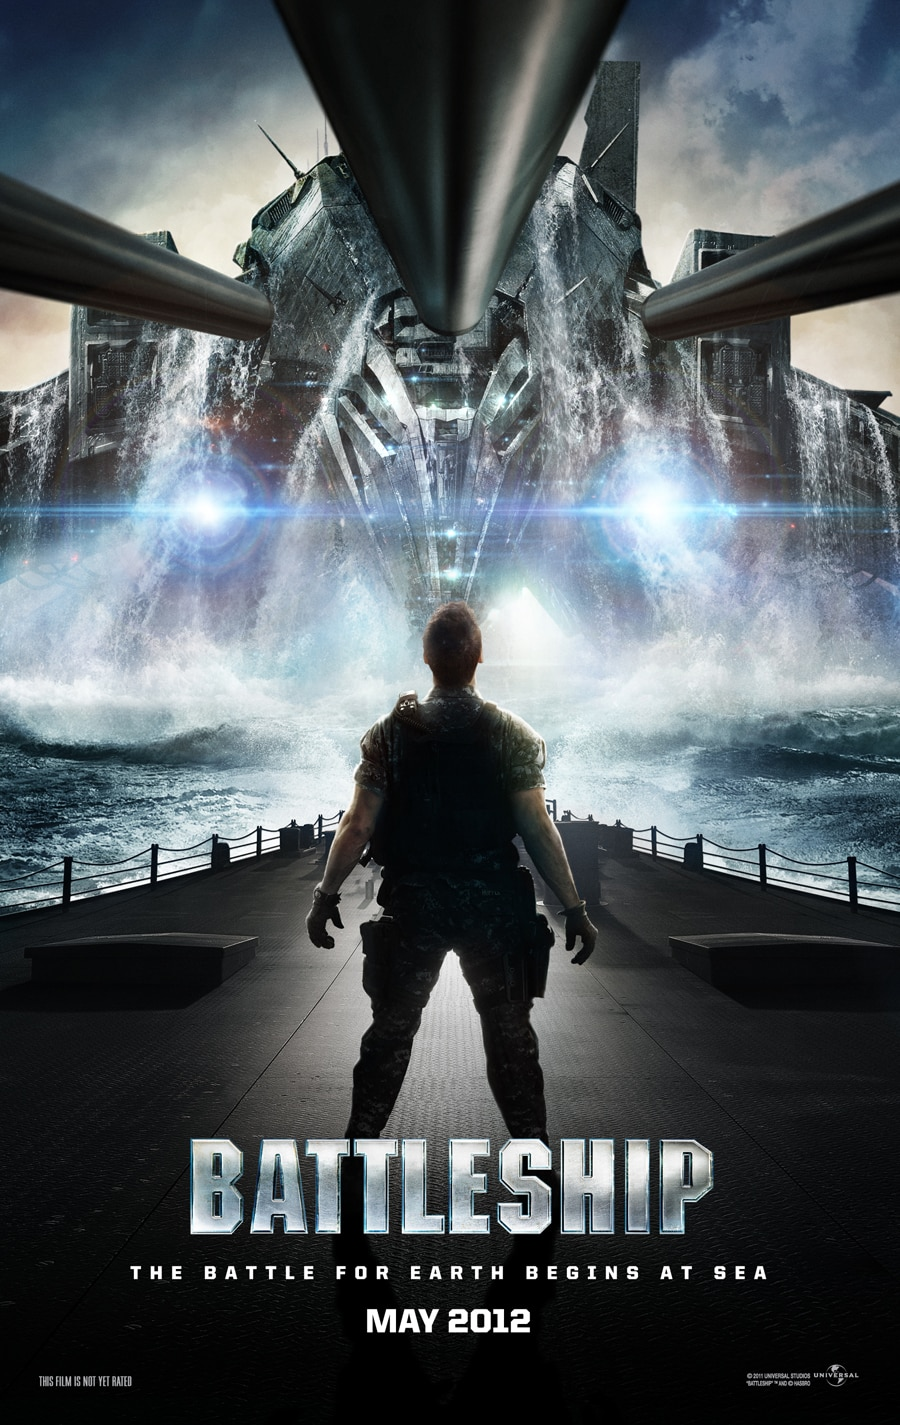 Japanese Battleship Trailer Sails in with More Alien Chaos